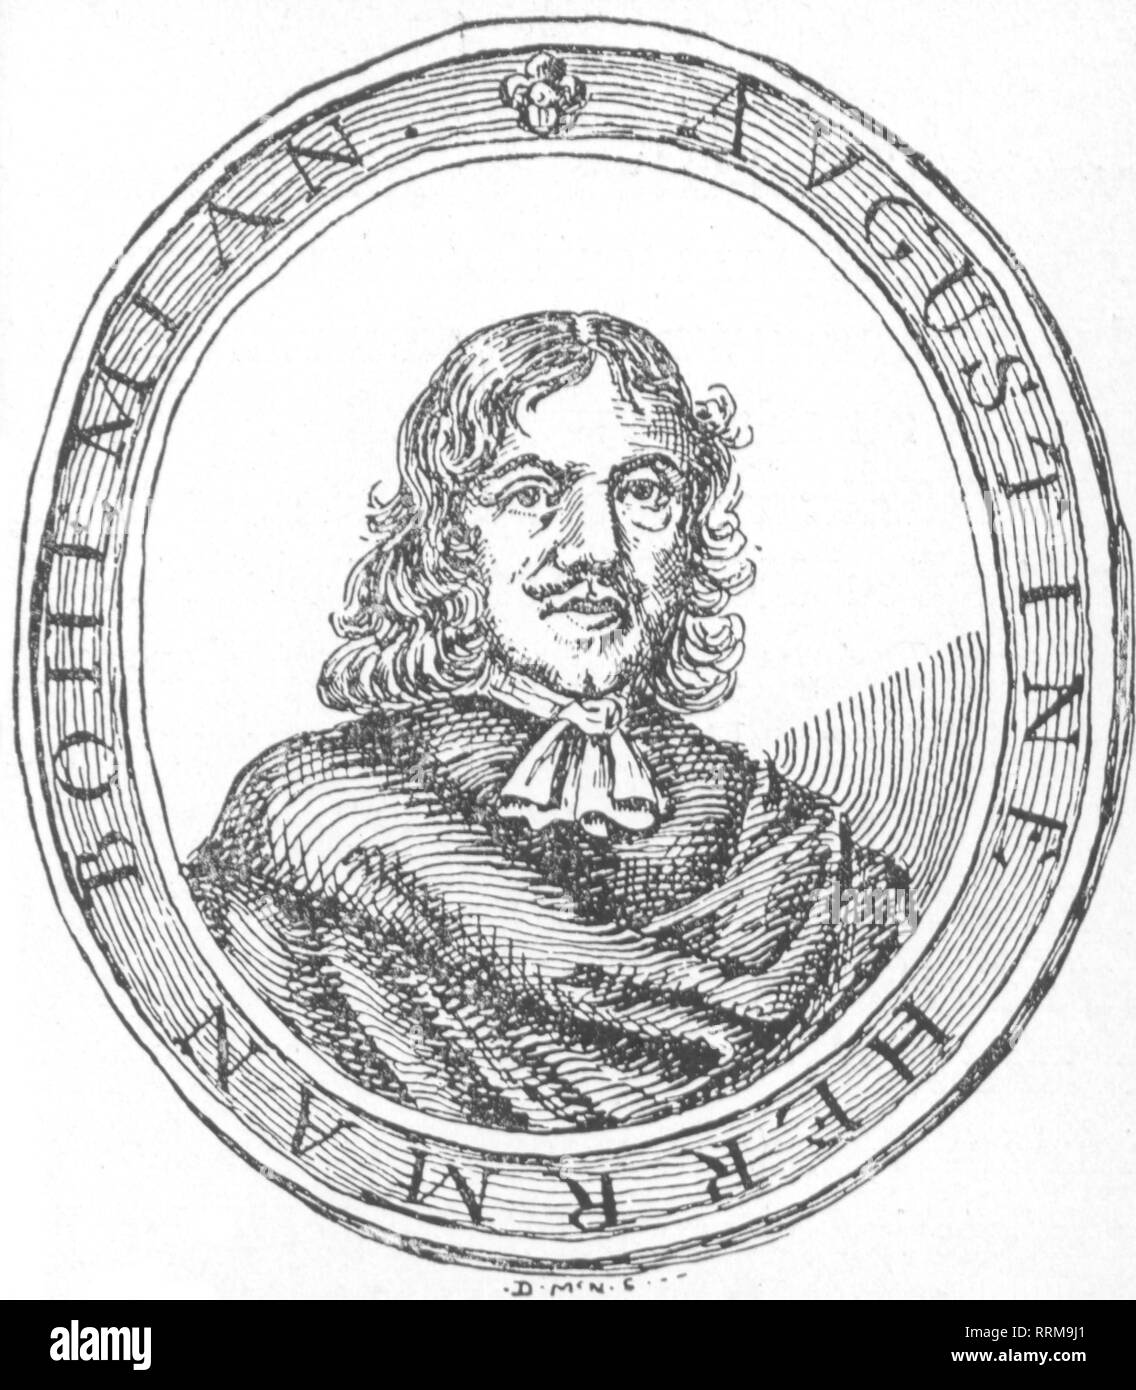 Herrman, Augustin, circa 1621 - September 1686, Bohemian discoverer, merchant and cartographer, portrait, copper engraving, 17th century, Additional-Rights-Clearance-Info-Not-Available - Stock Image